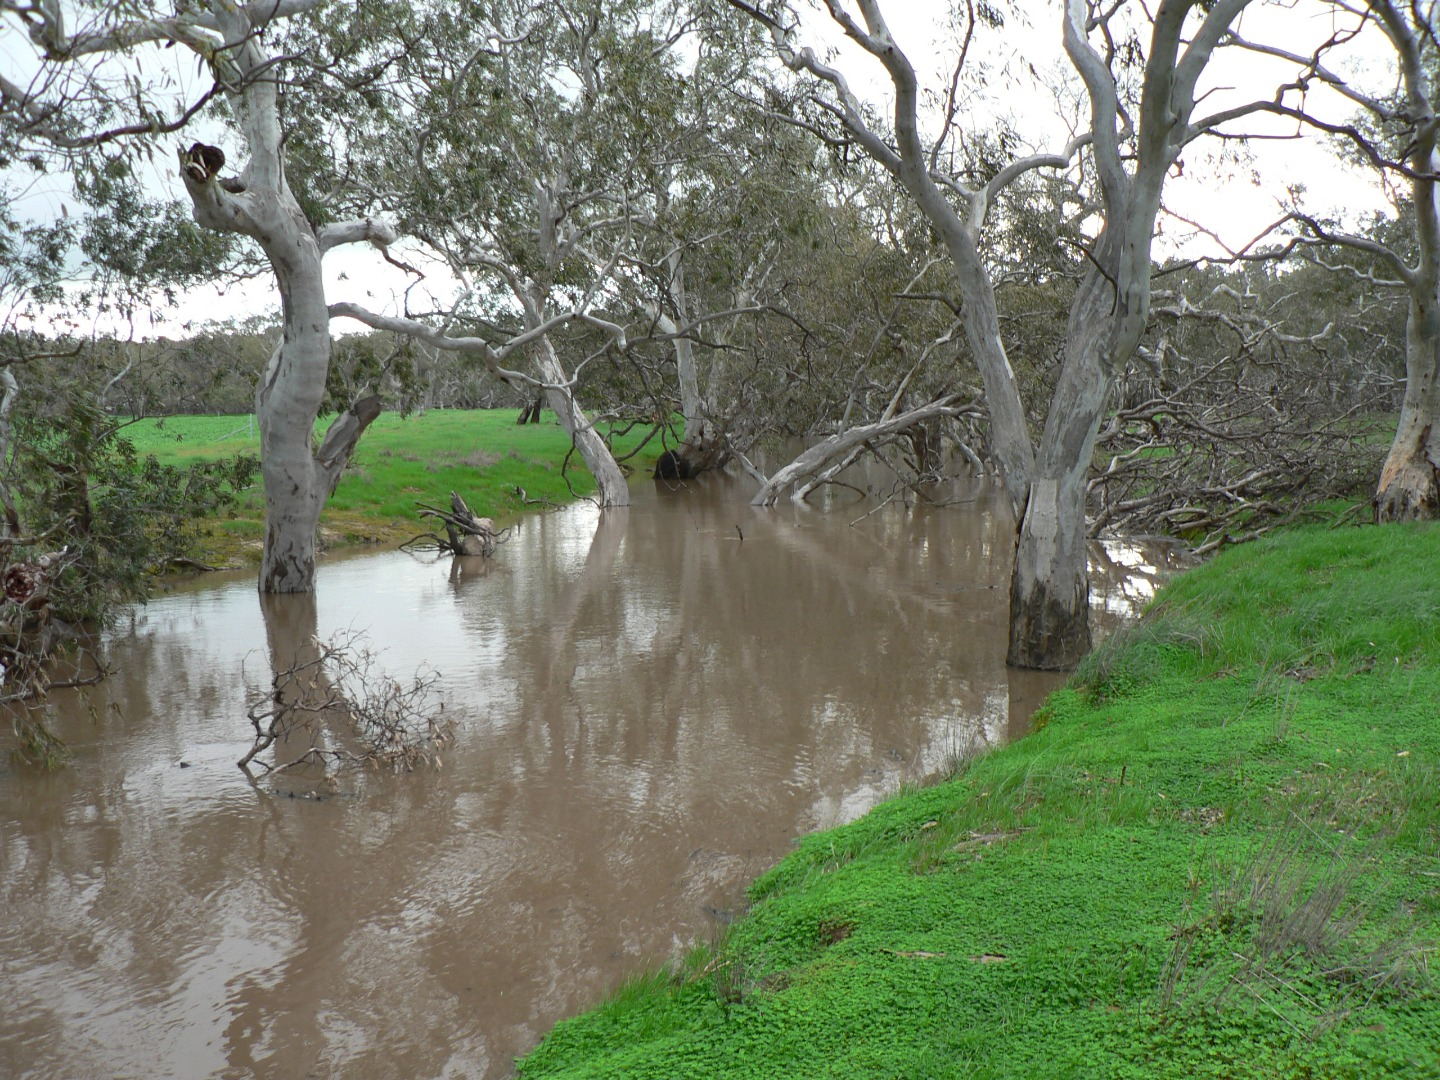 Avon River Photo's show the current flow